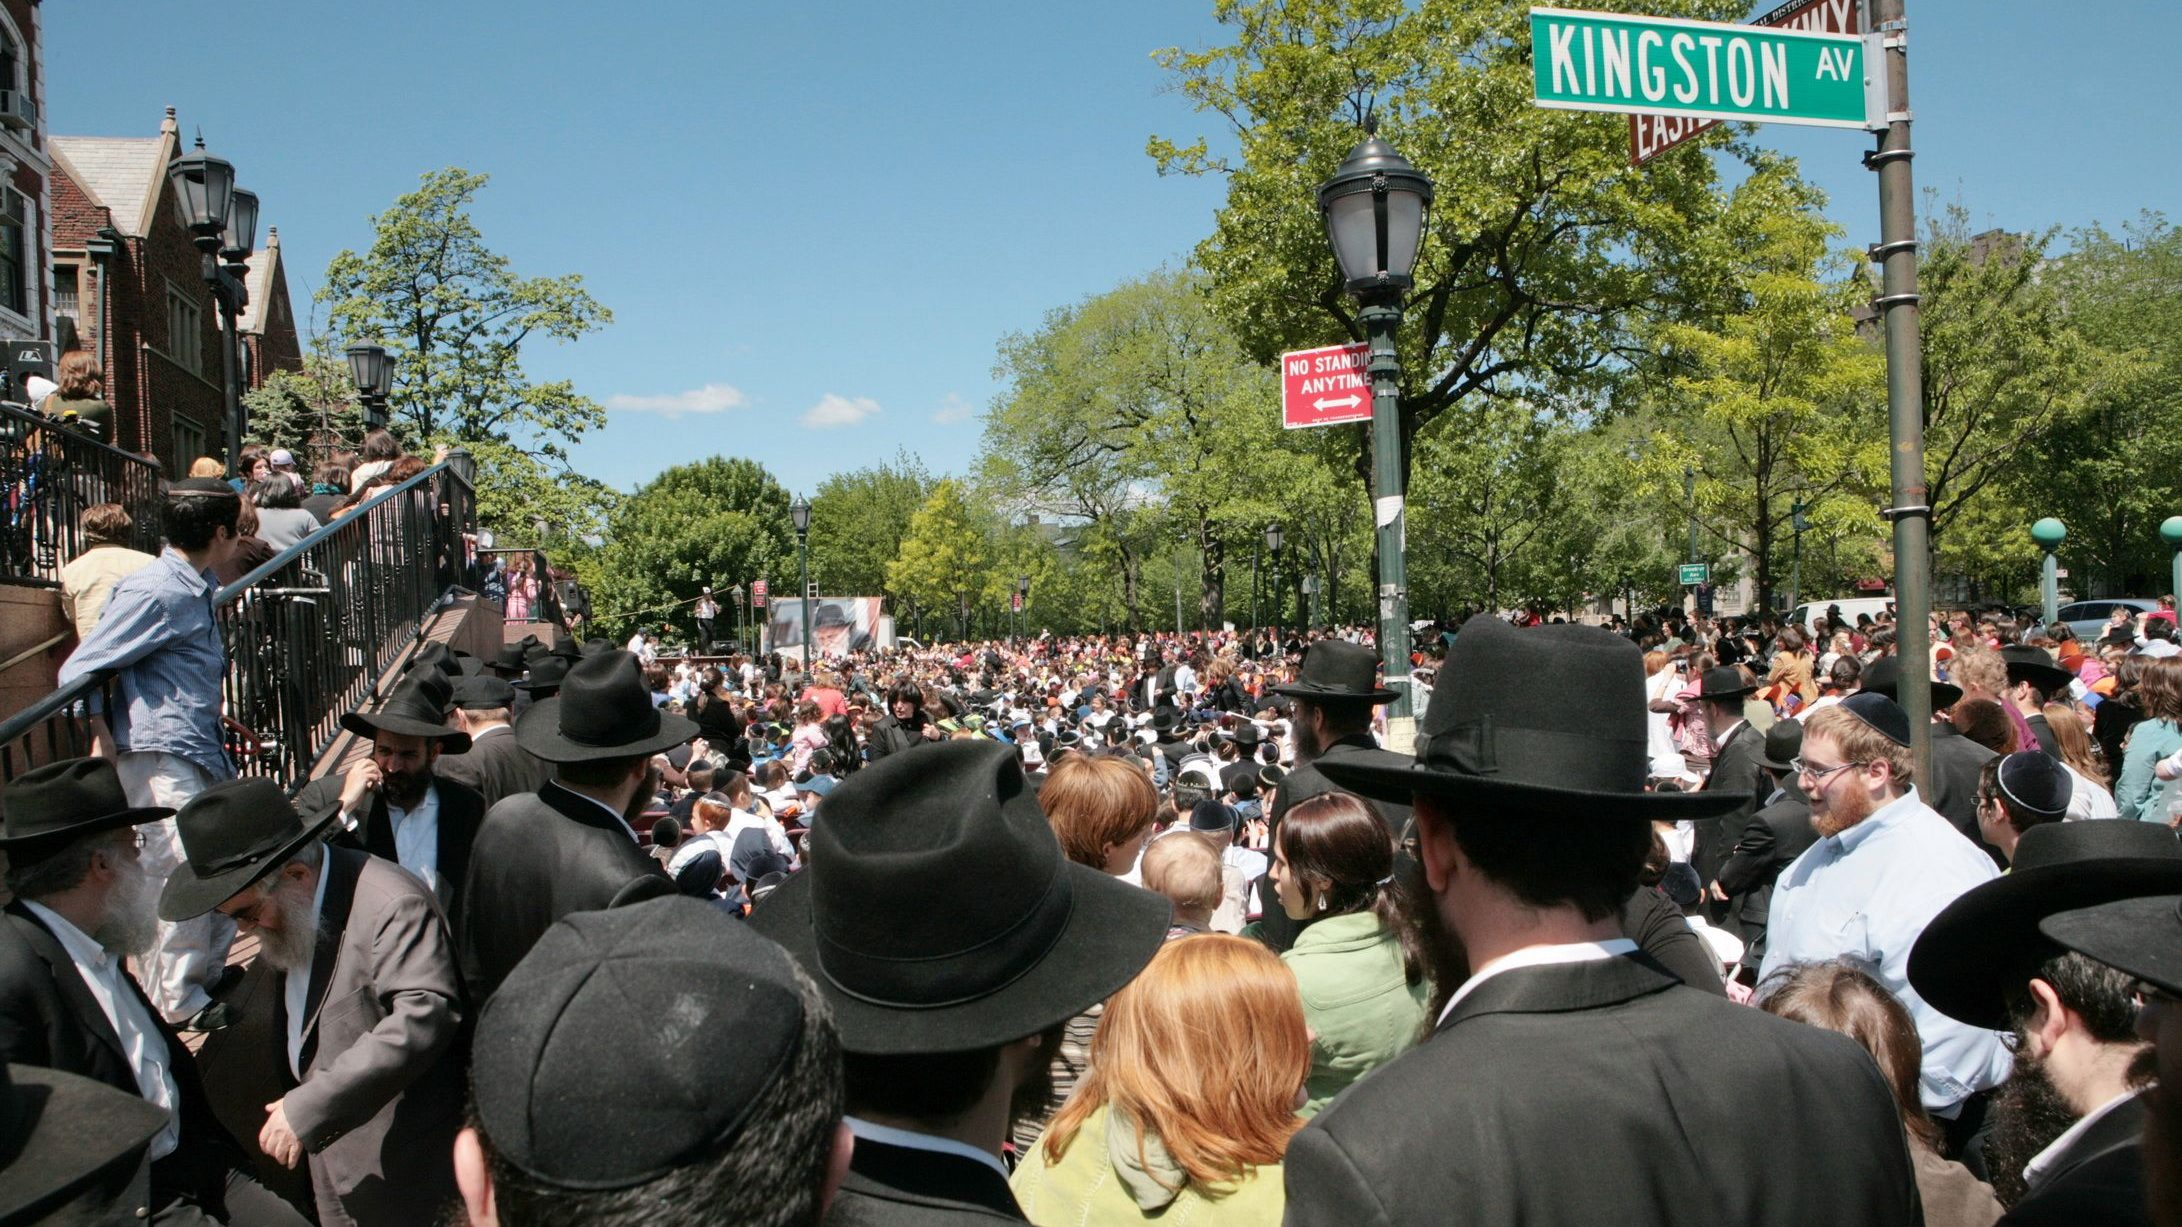 The New Jersey-based group catered to orthodox Jewish communities in places like Crown Heights, Brooklyn.